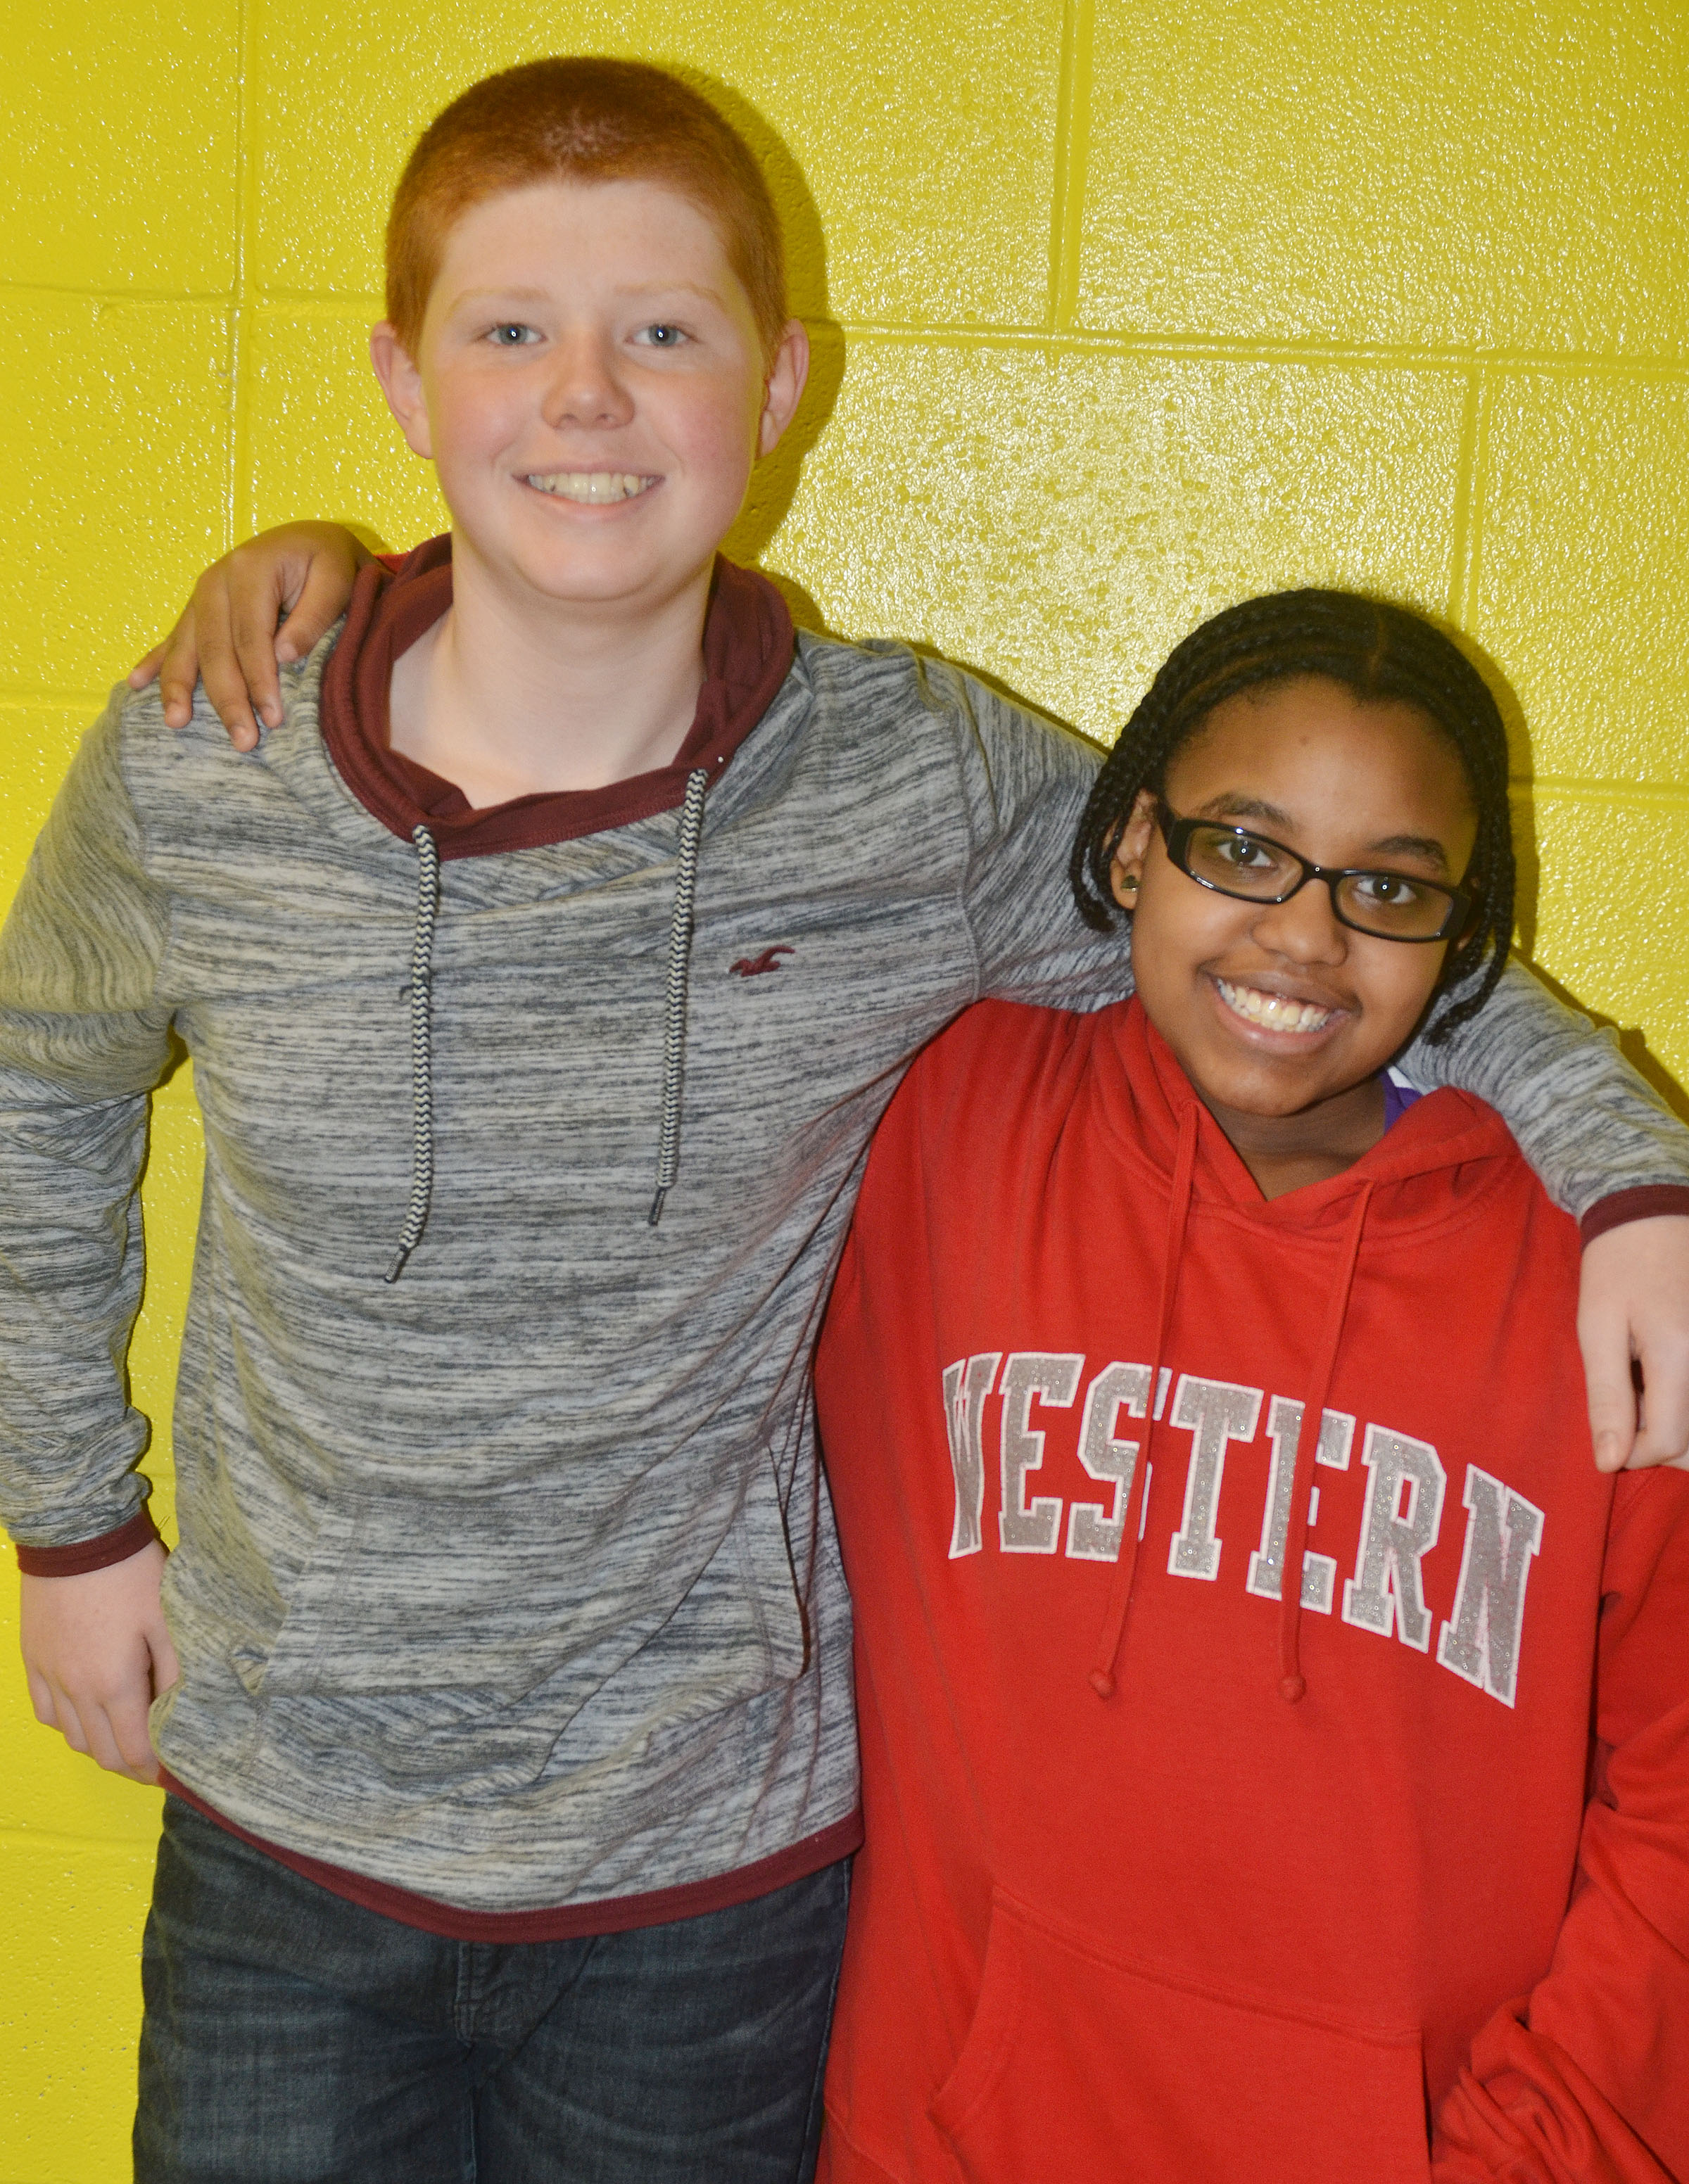 Friendliest students are Collin Harris and Jasmine Mitchell.